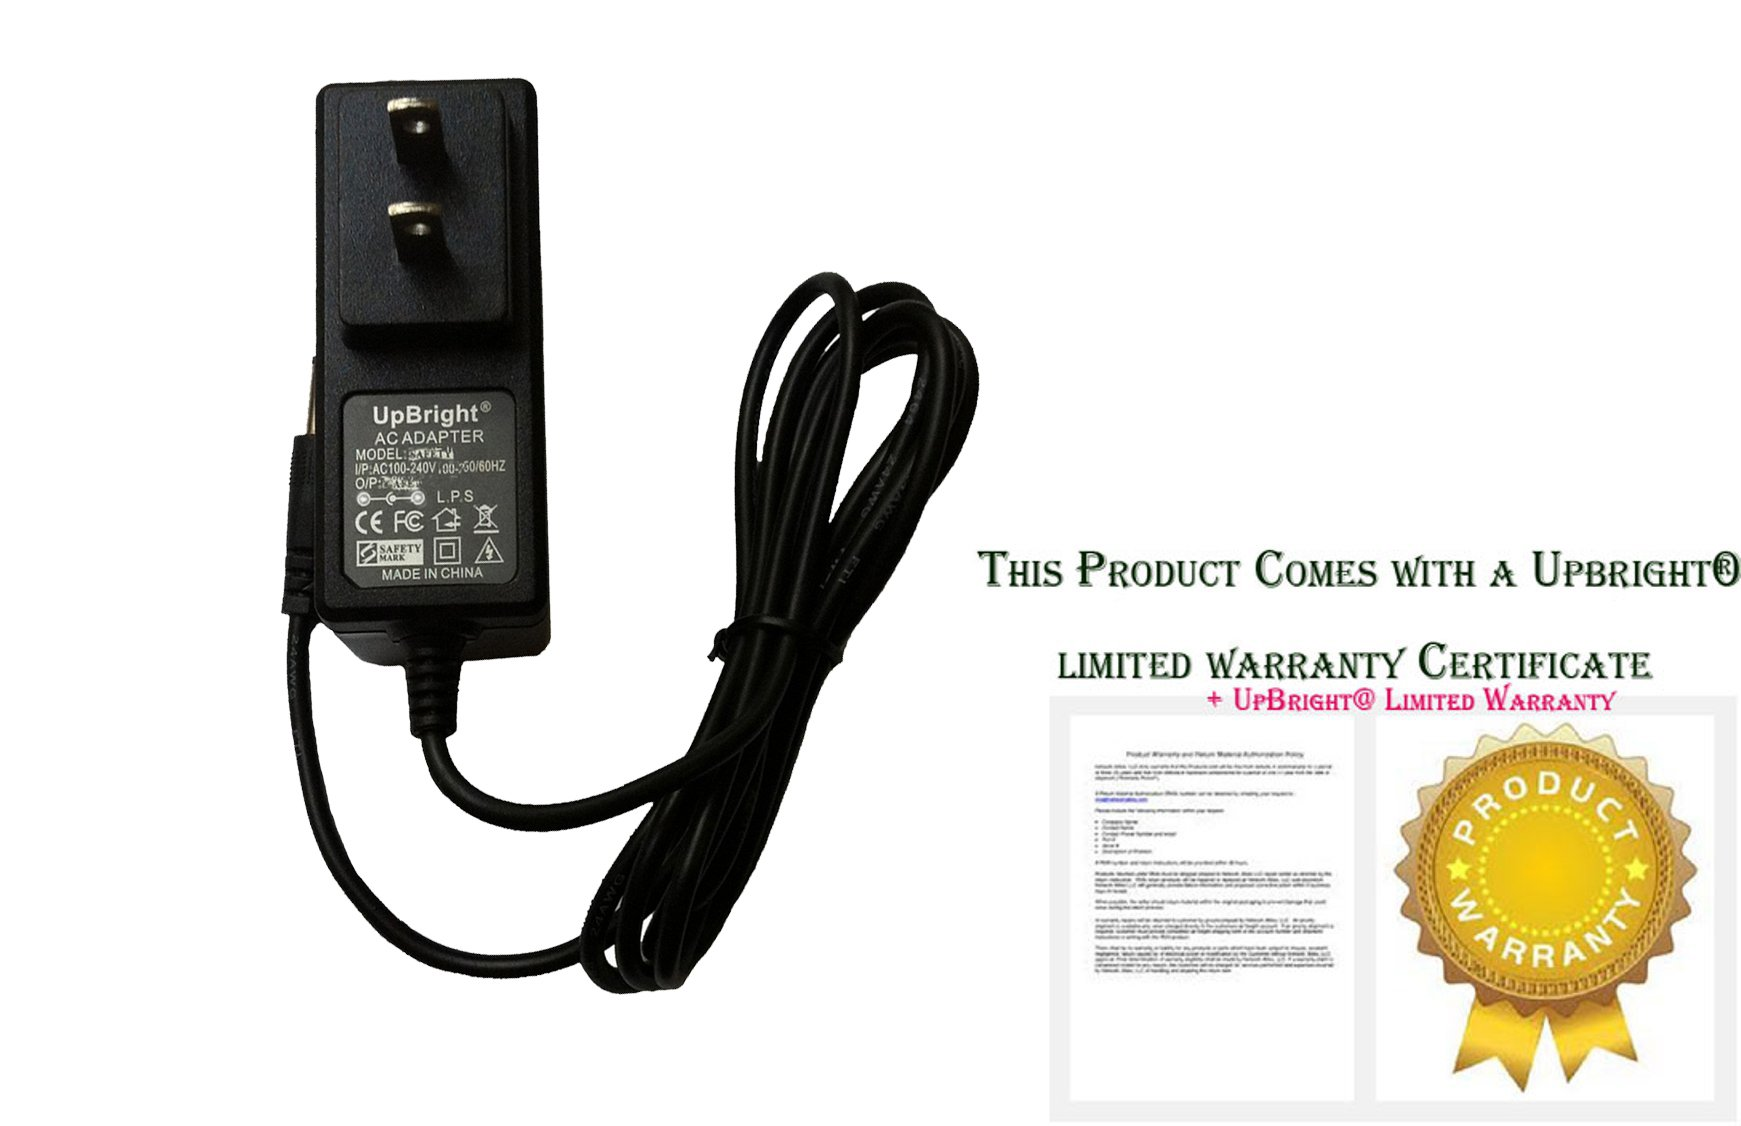 UpBright New AC / DC Adapter For HP 5187-2105 51872105 5187-2106 51872106 Model No Entry Satellite harman / kardon Computer PC Speaker System Power Cord Charger PSU